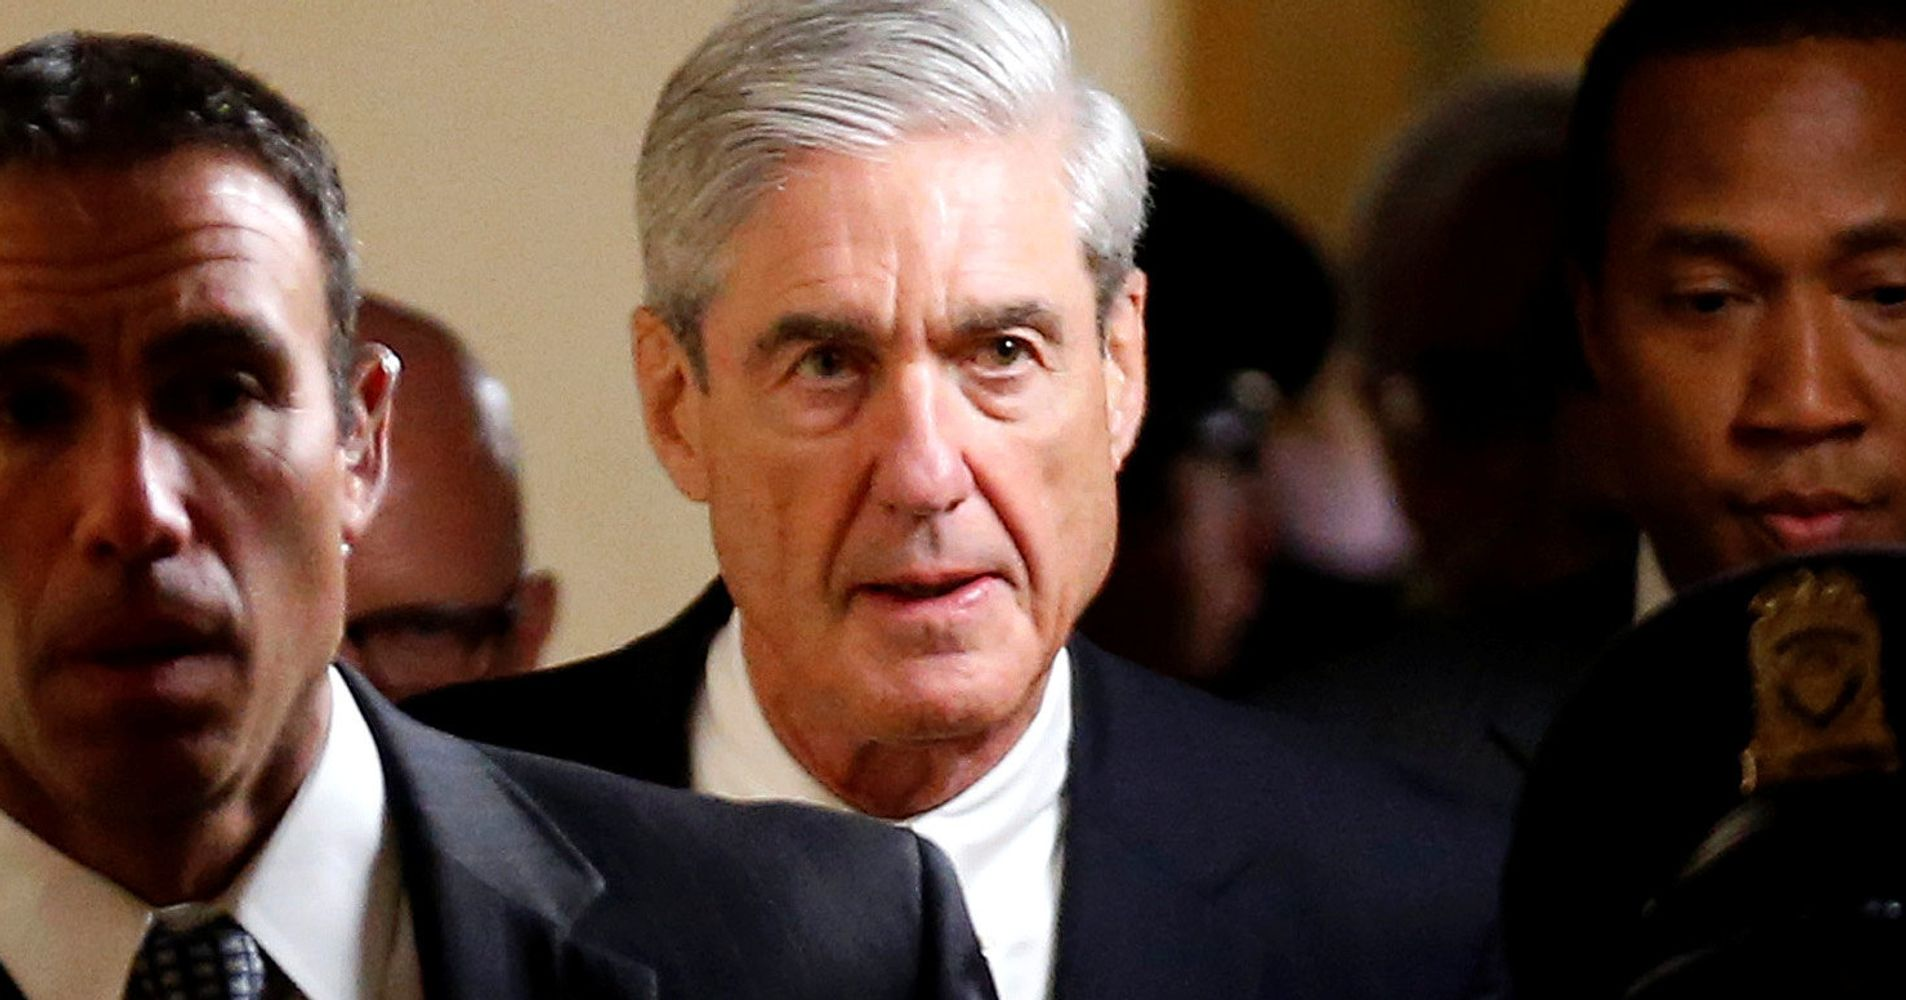 Some Trump Supporters Think Mueller's Grand Jury Has Too Many Black People